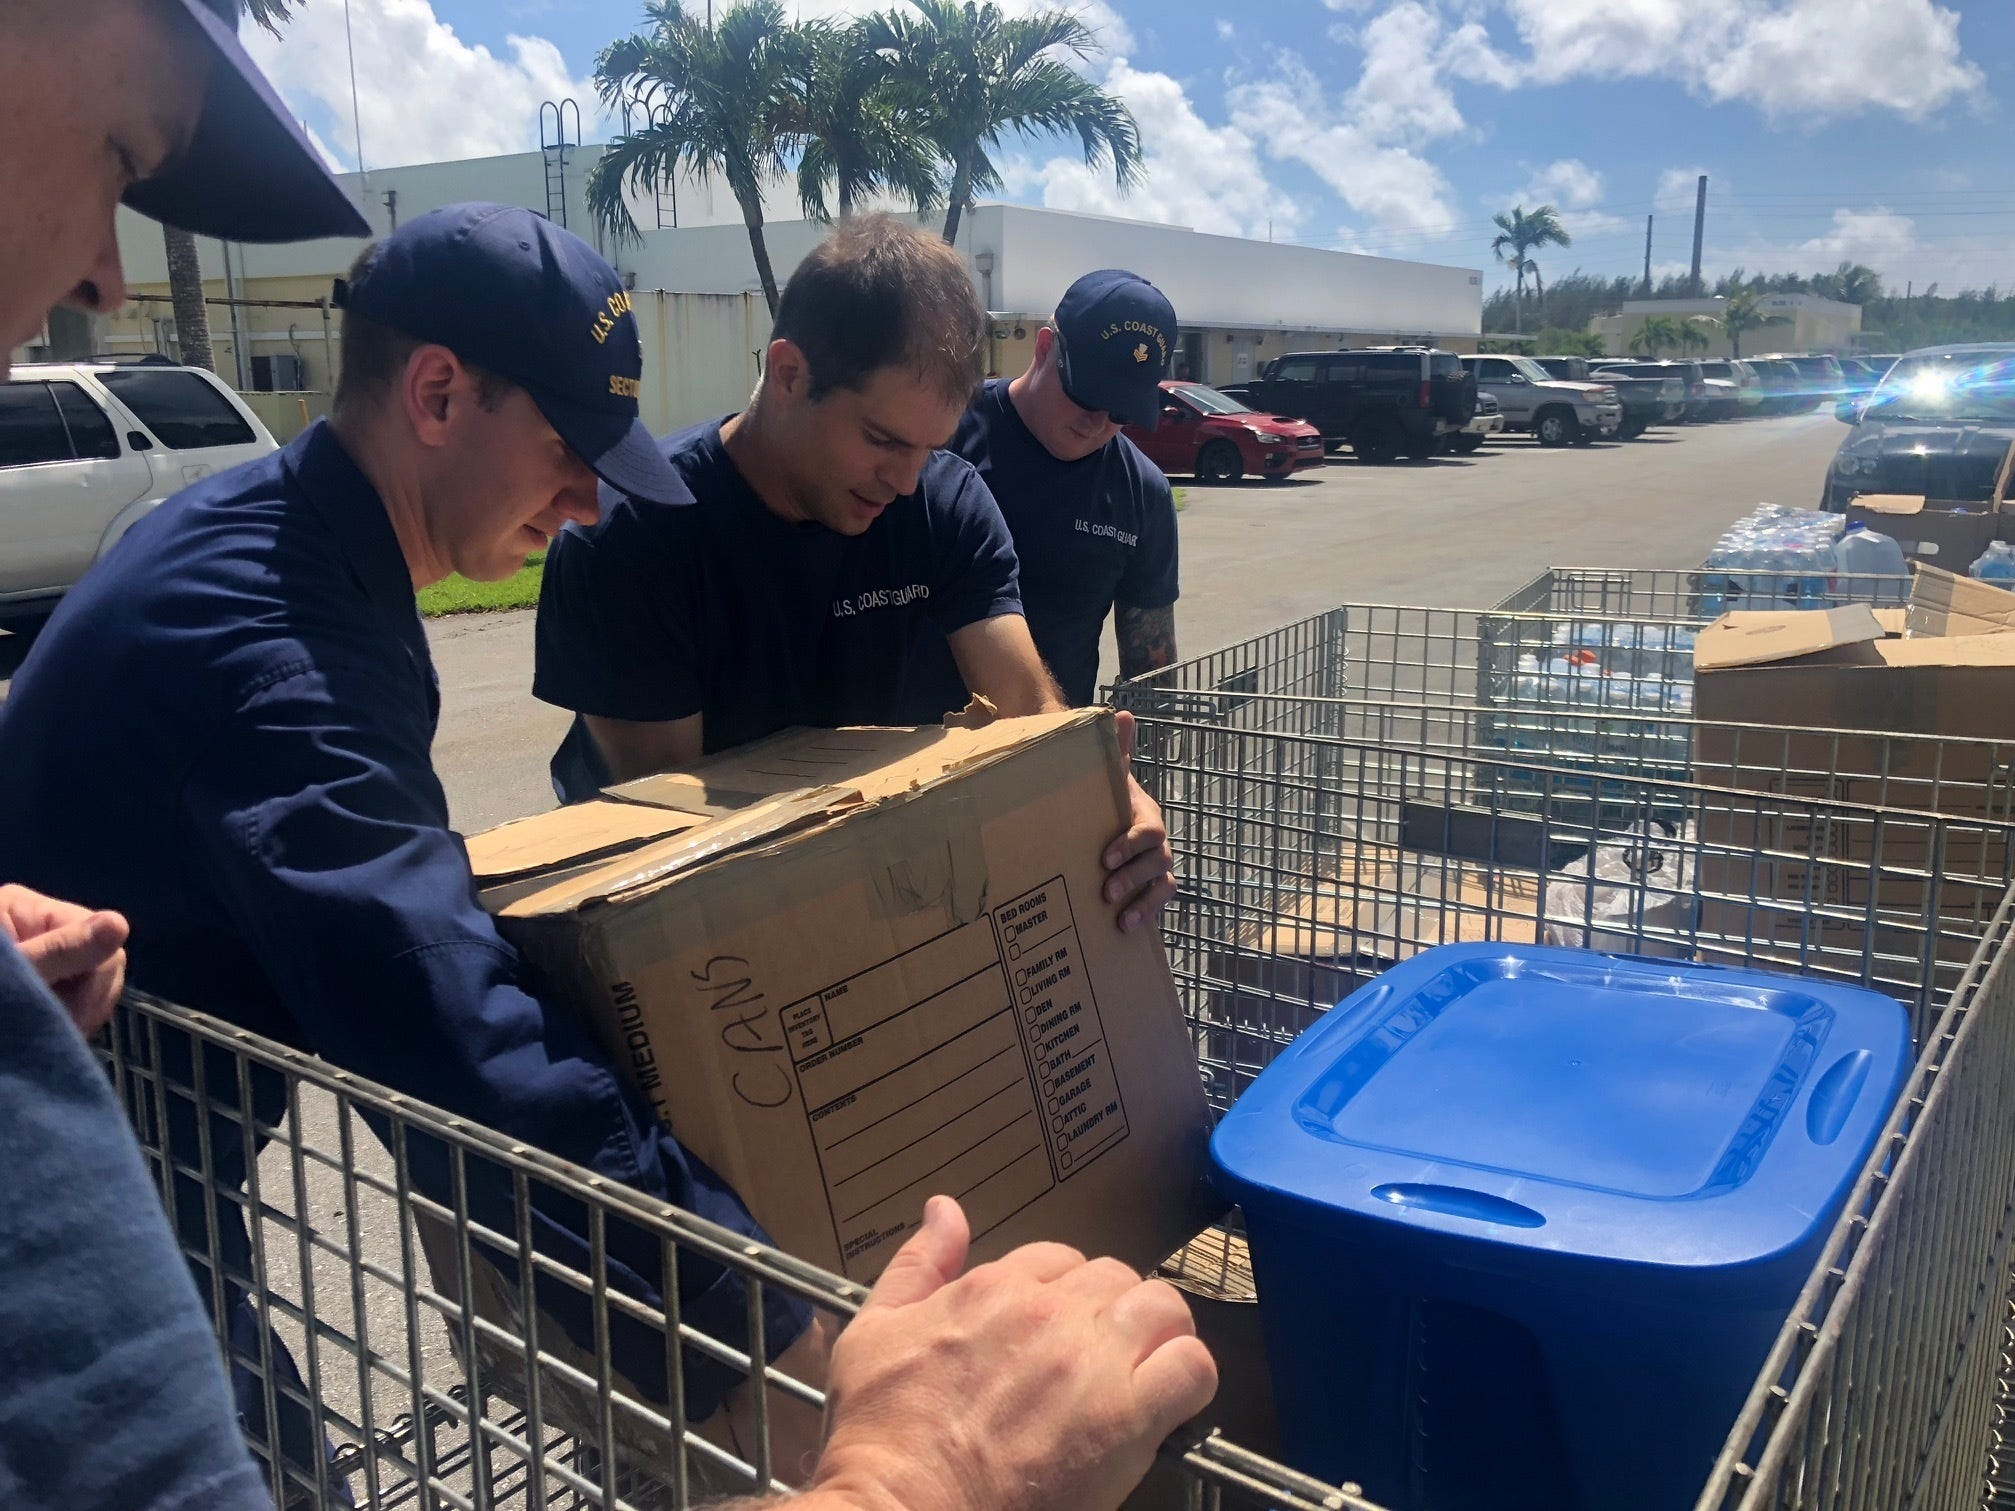 Crewmembers from Coast Guard Sector Guam prepare supplies to be sent to Saipan, Oct. 26, 2018. Members of the community on Guam donated many different supplies to be sent for relief efforts to those effected by Typhoon Yutu.